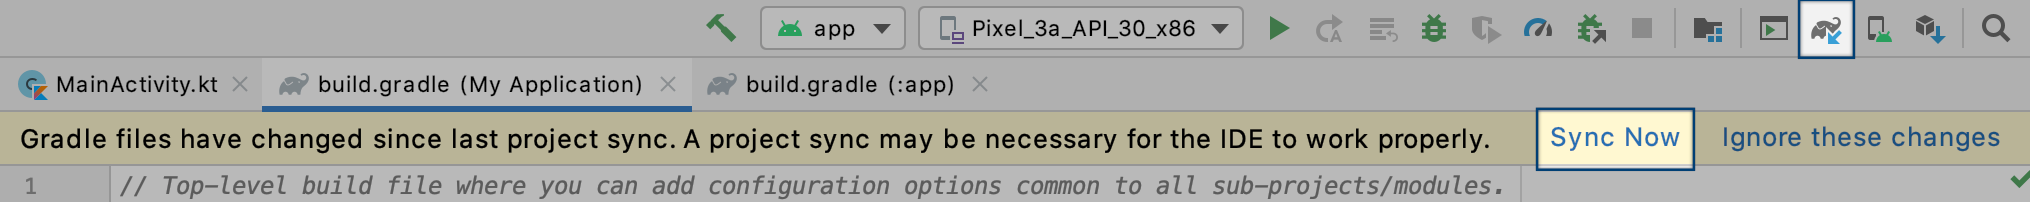 Select **Sync Now** from the banner or select **Sync Projects with Gradle Files** from the Android Studio toolbar to sync your Gradle file updates.